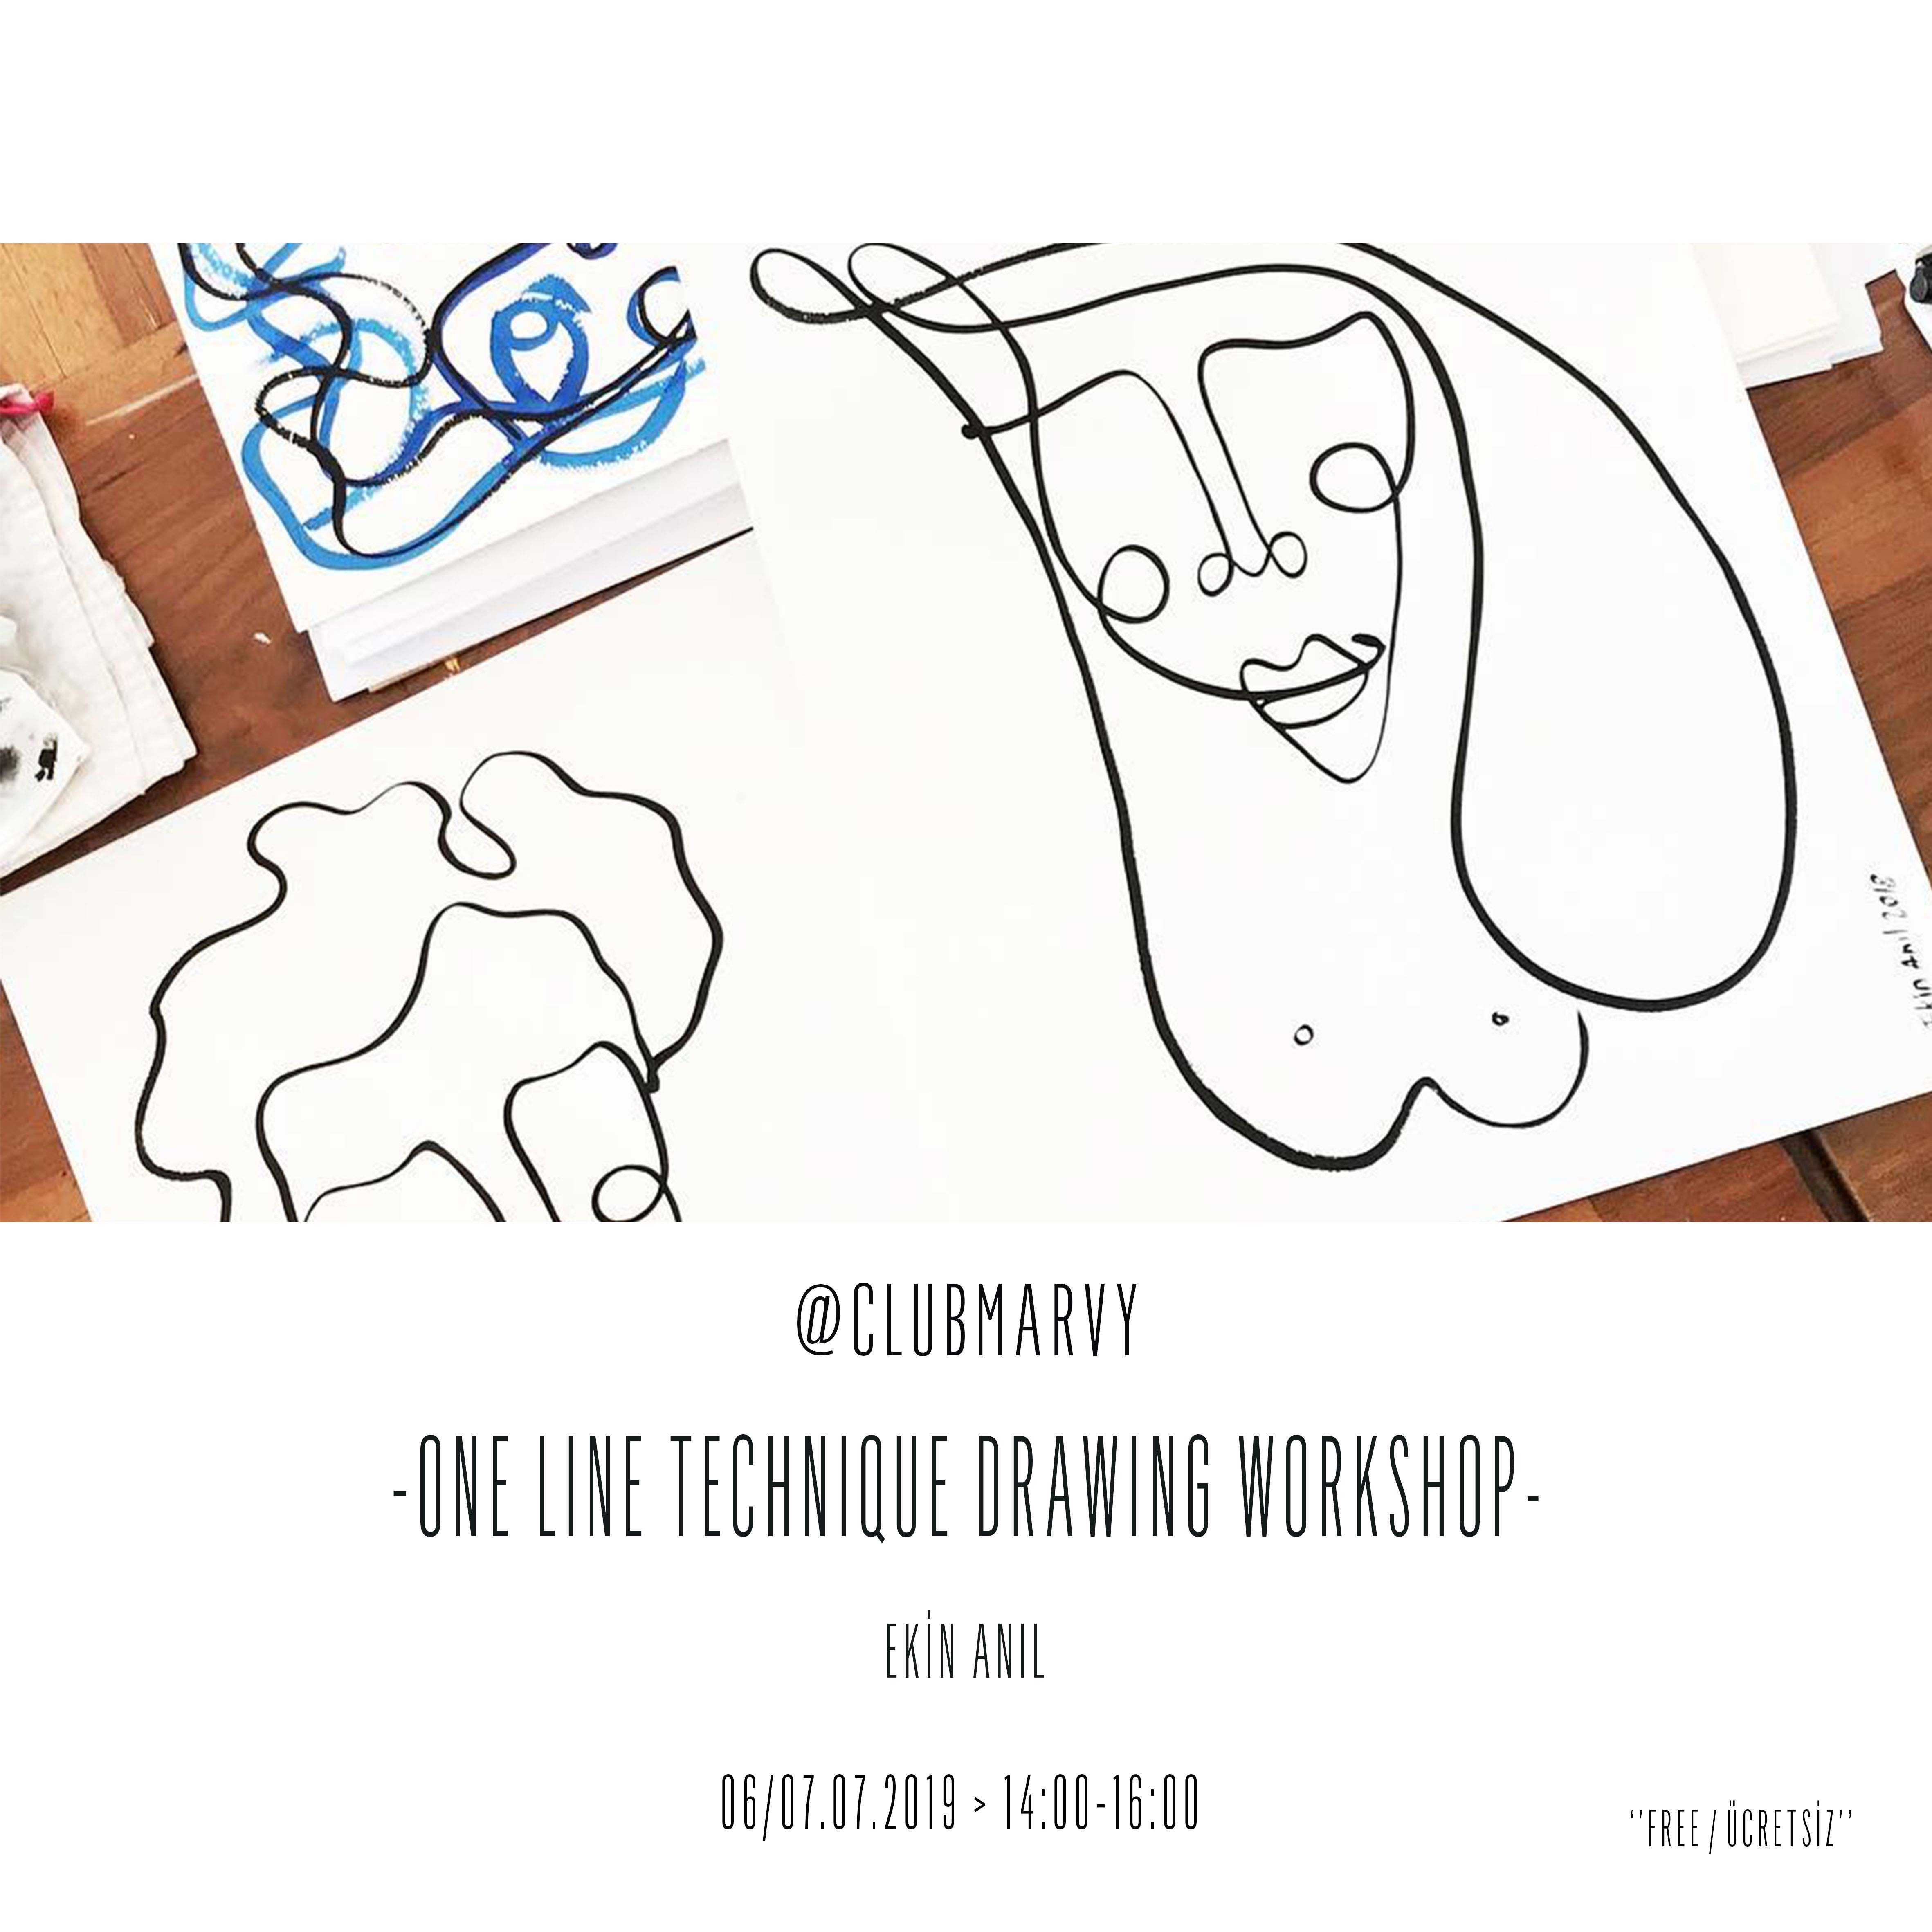 One Line Technique Drawing Workshop